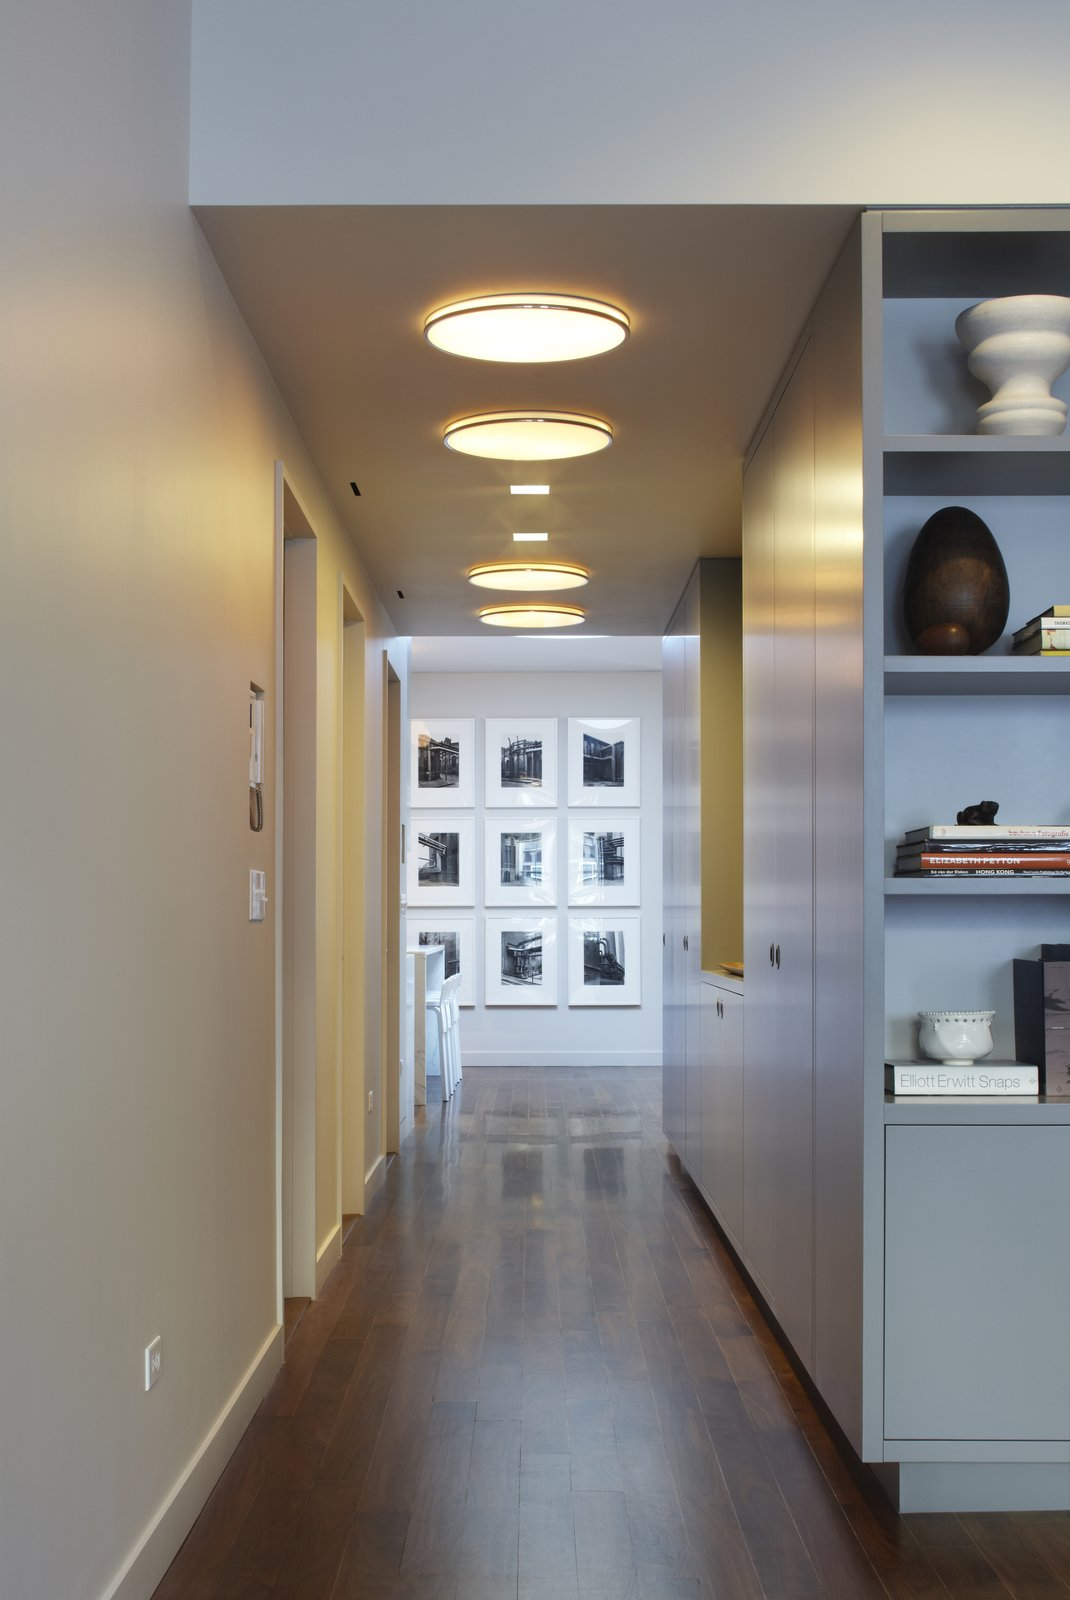 The front hallway links the living room to the kitchen and dining area.  The existing apartment was originally a manufacturing loft space.  NYC lofts being long and narrow with windows typically only at the front and rear façades can be somewhat dark.  With this in mind we designed the apartment to have light filled spaces via rooftop skylights.  Here a photo series by Bernd and Hilla Becher are washed with natural light from a large drum skylight not yet visible from this perspective.  The hallway ceiling echoes the drum skylight with Munkegaard fixtures, one of our favorites from Louis Poulsen.  White Street Residence by pulltab